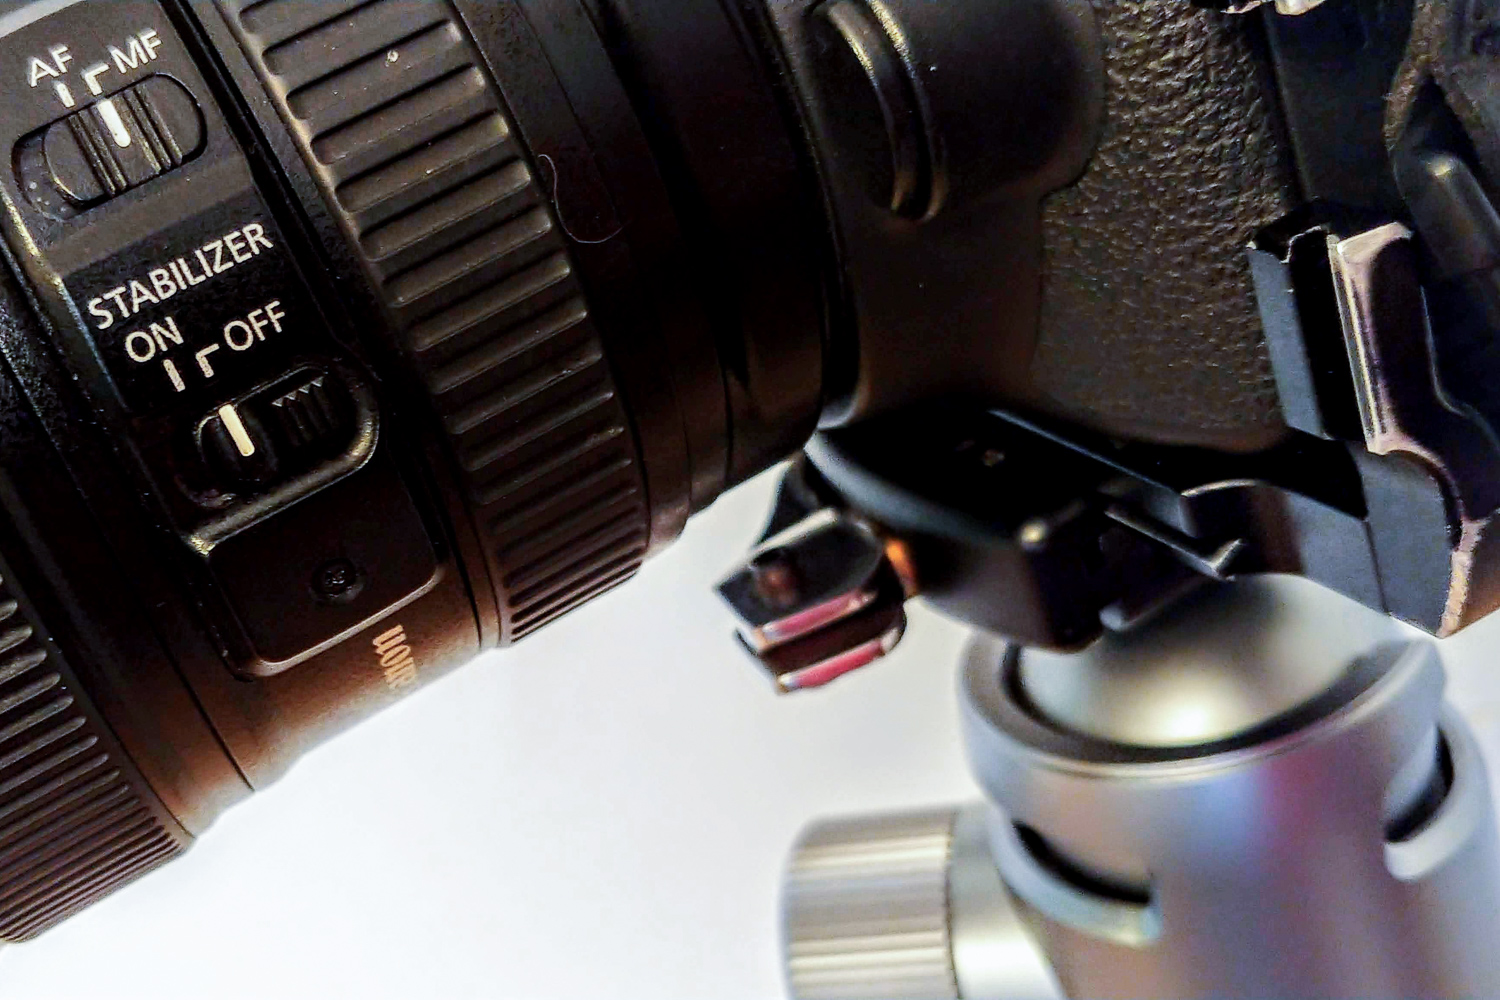 Image: When working on a tripod, turn off the image stabilization. It won't help, and in fact,...